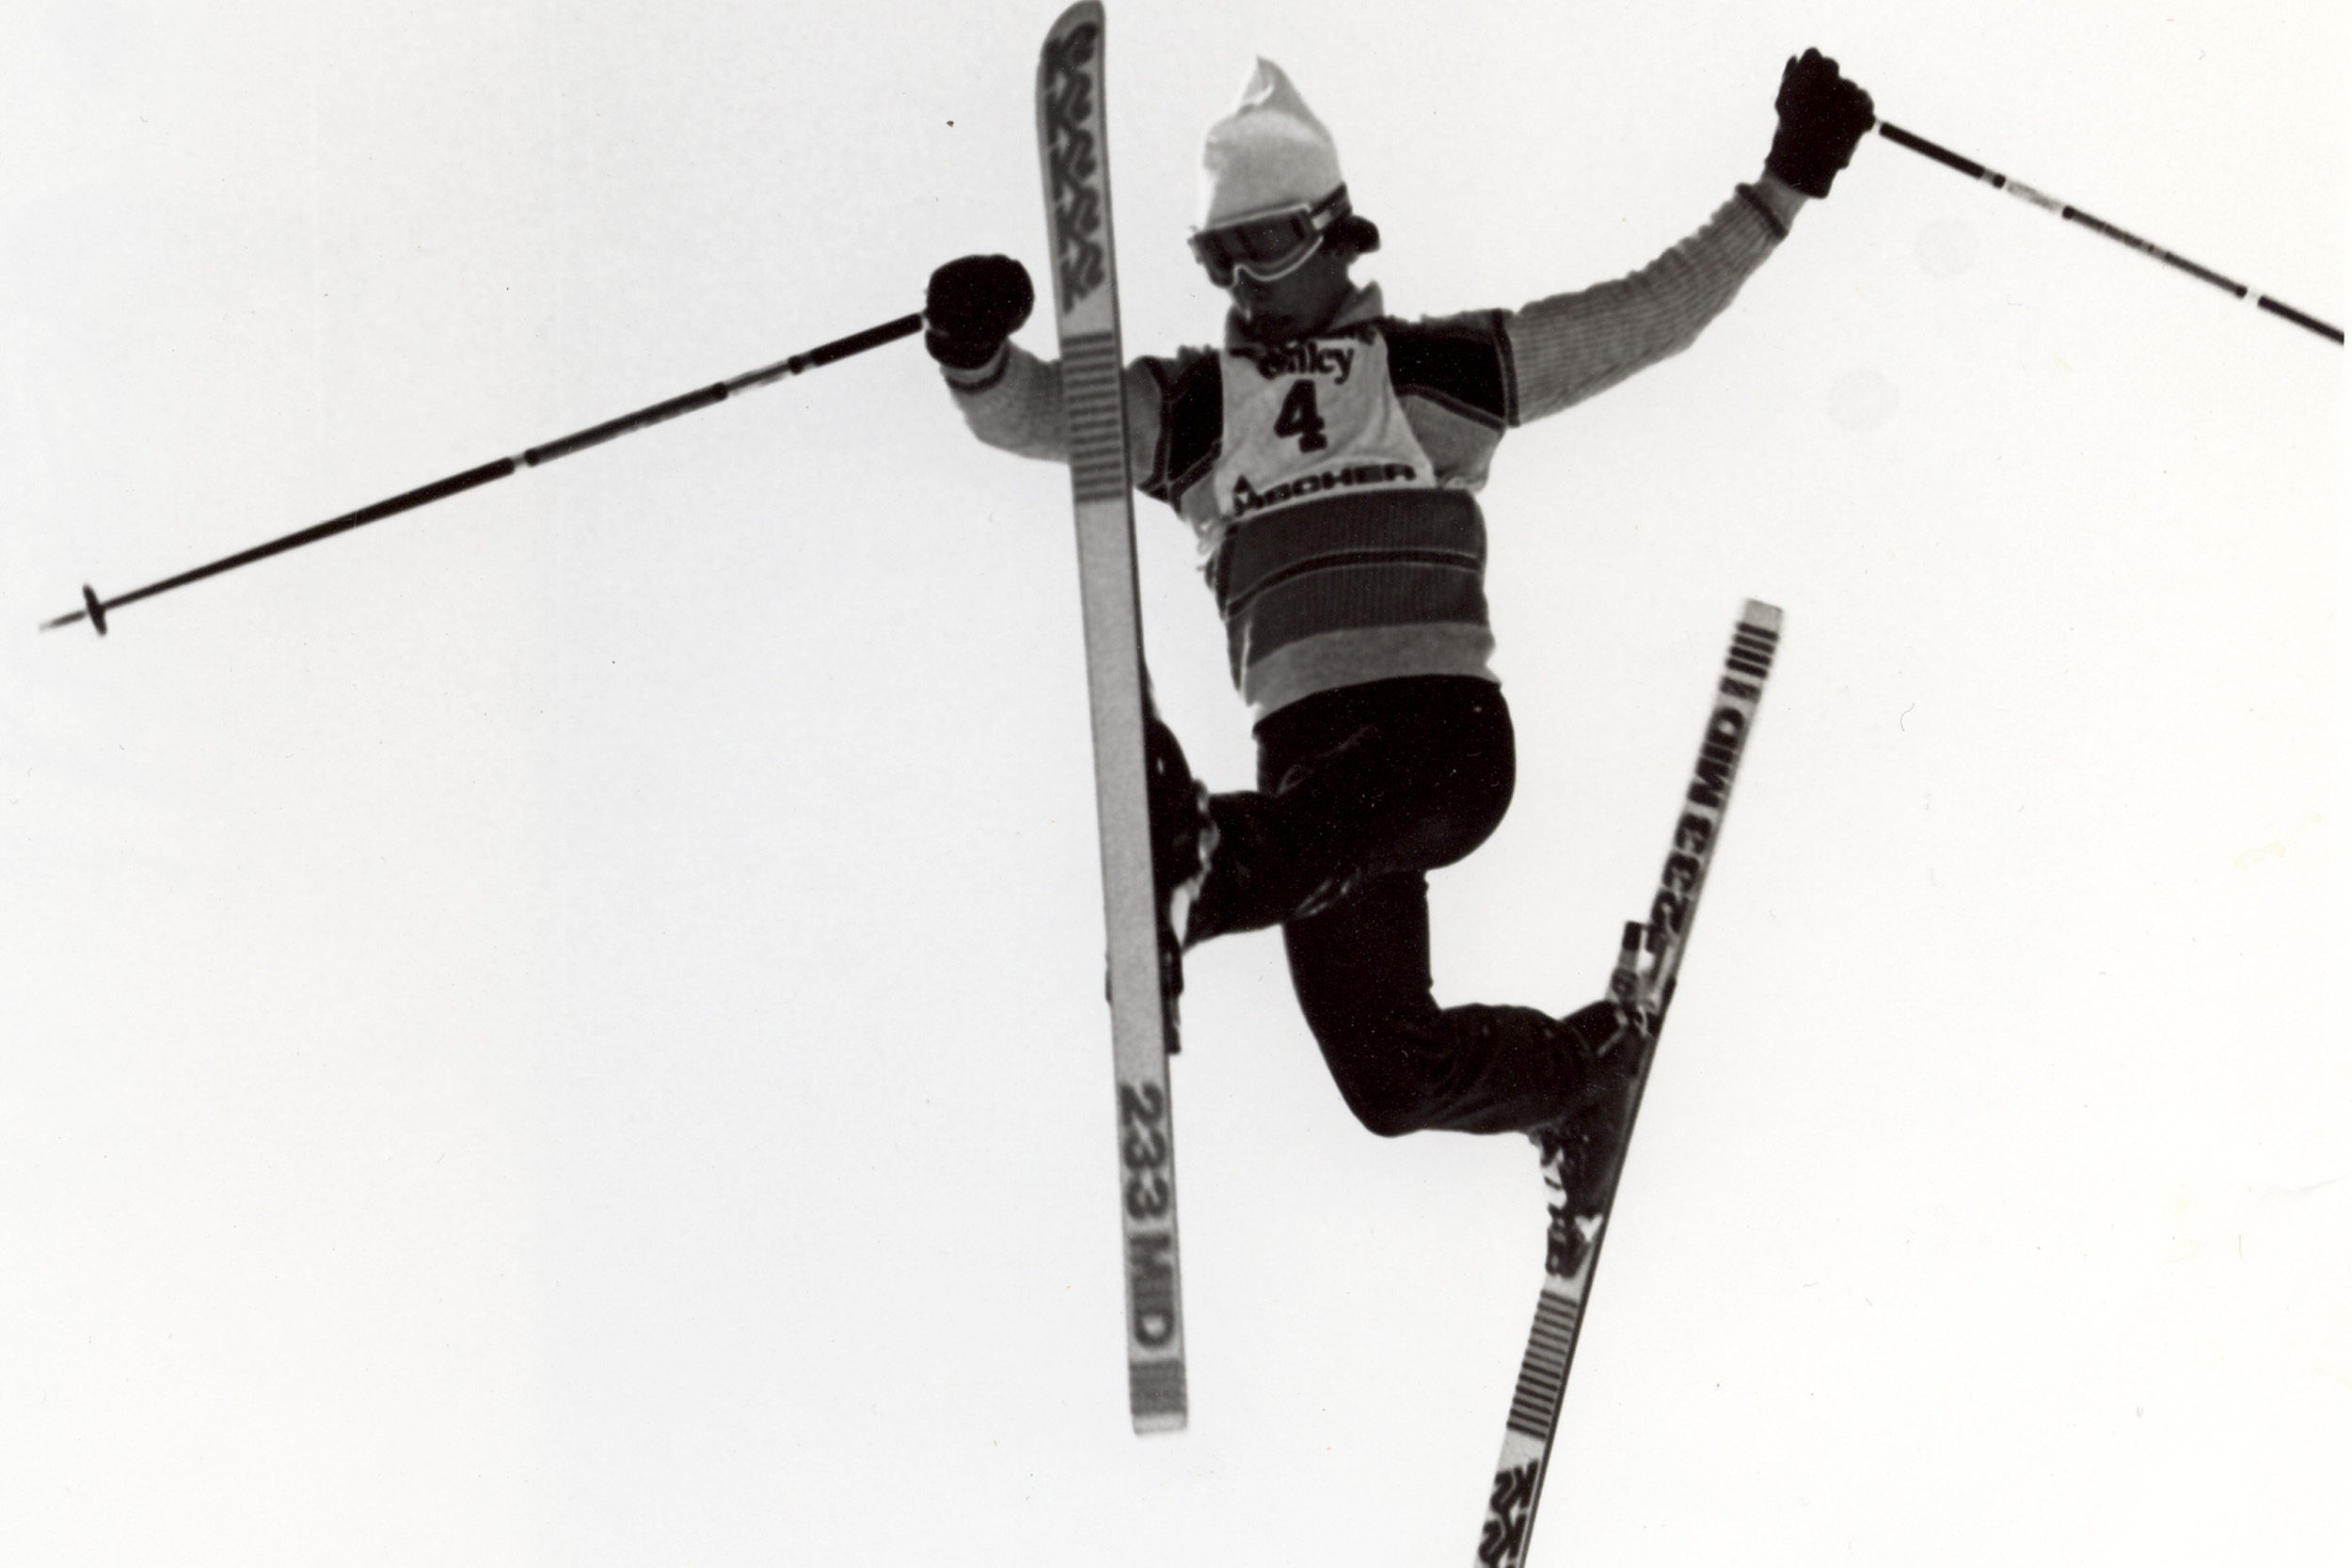 Freestyle skiing in the 70s